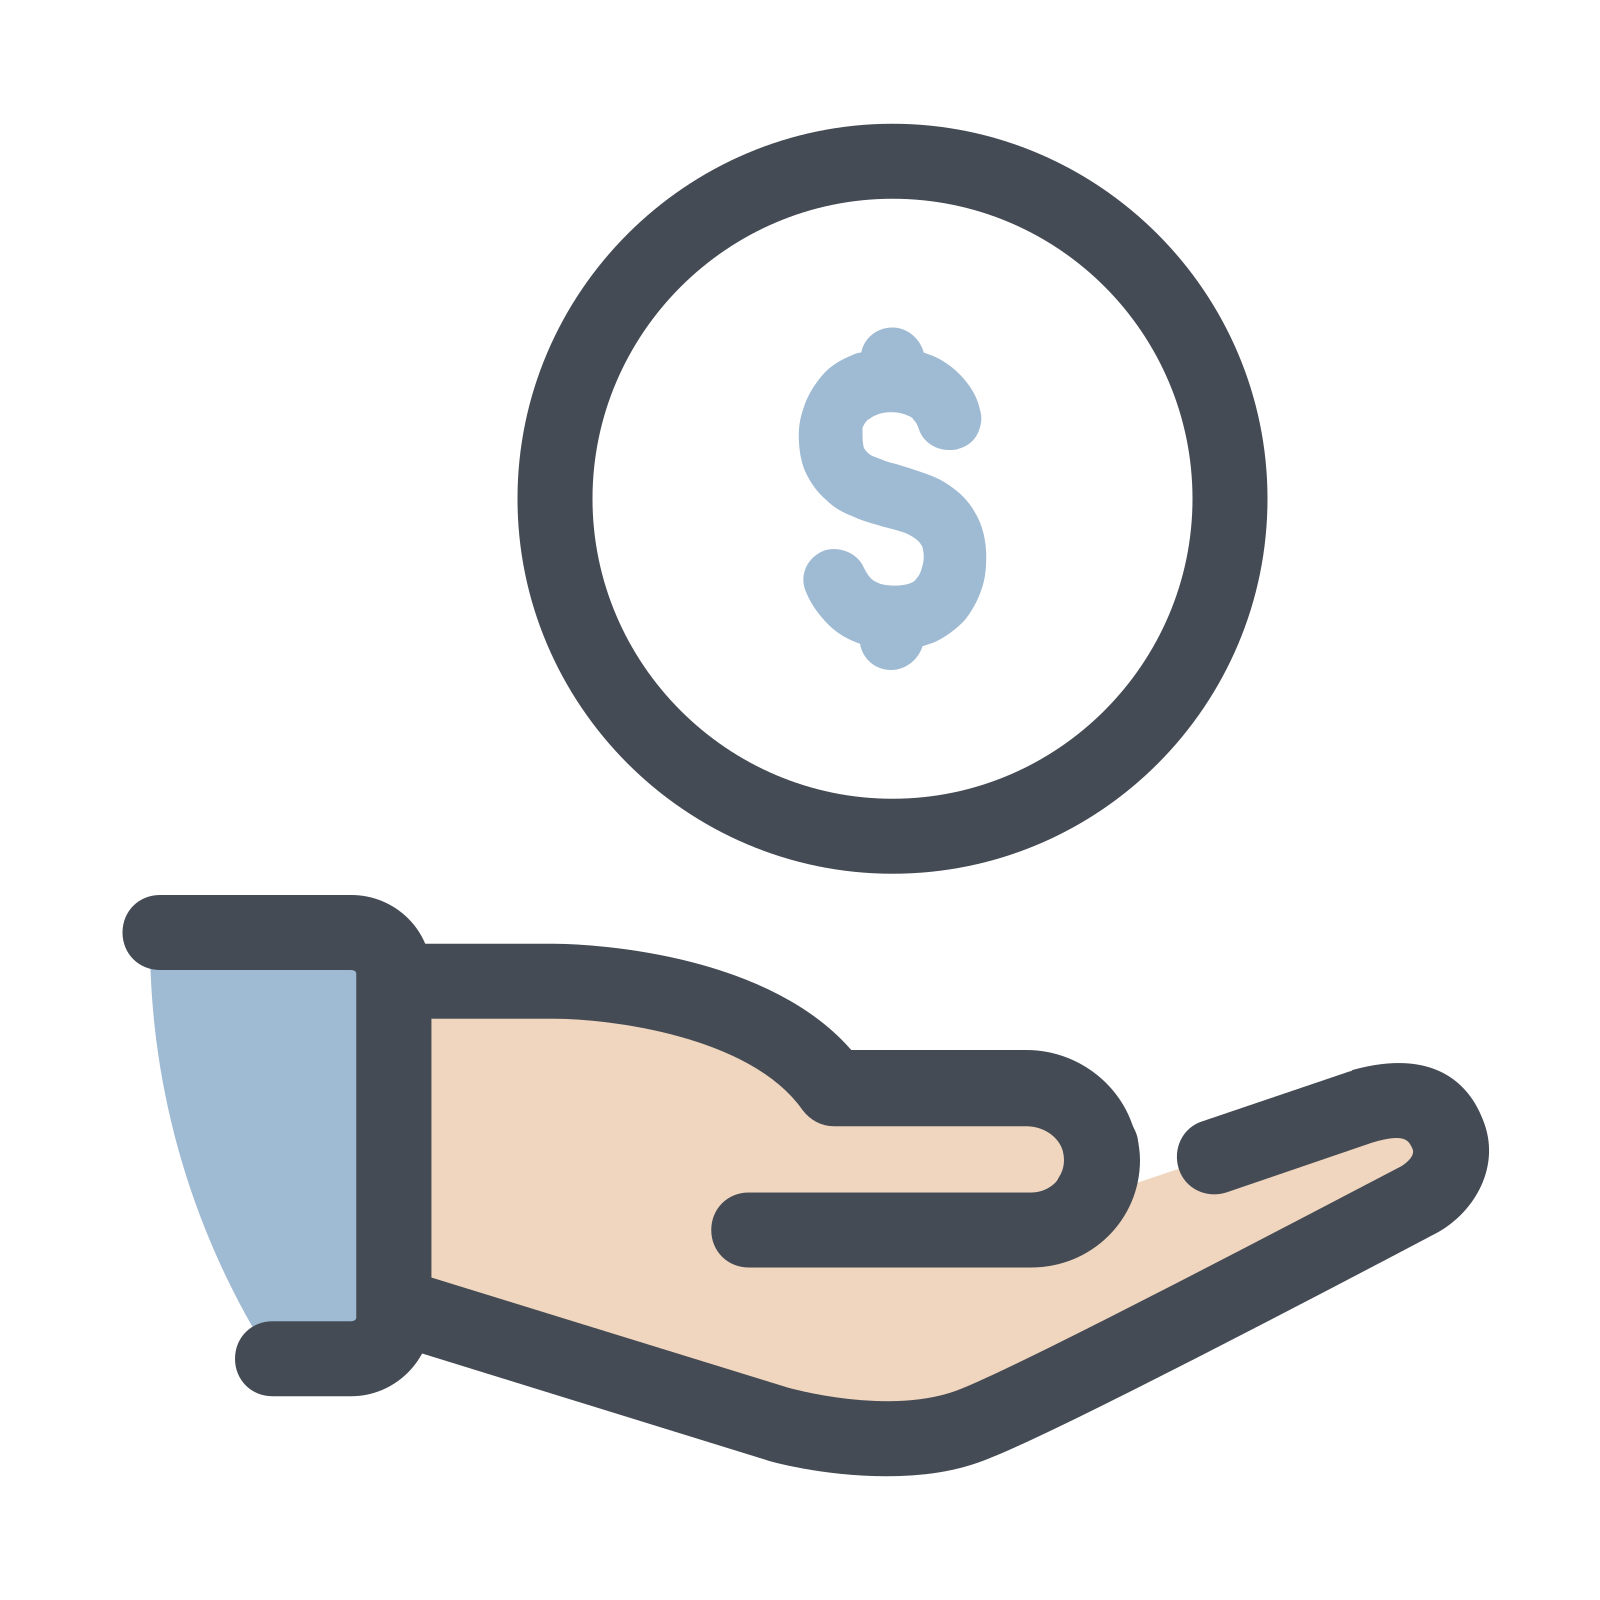 Get cash free download. Save money icon png